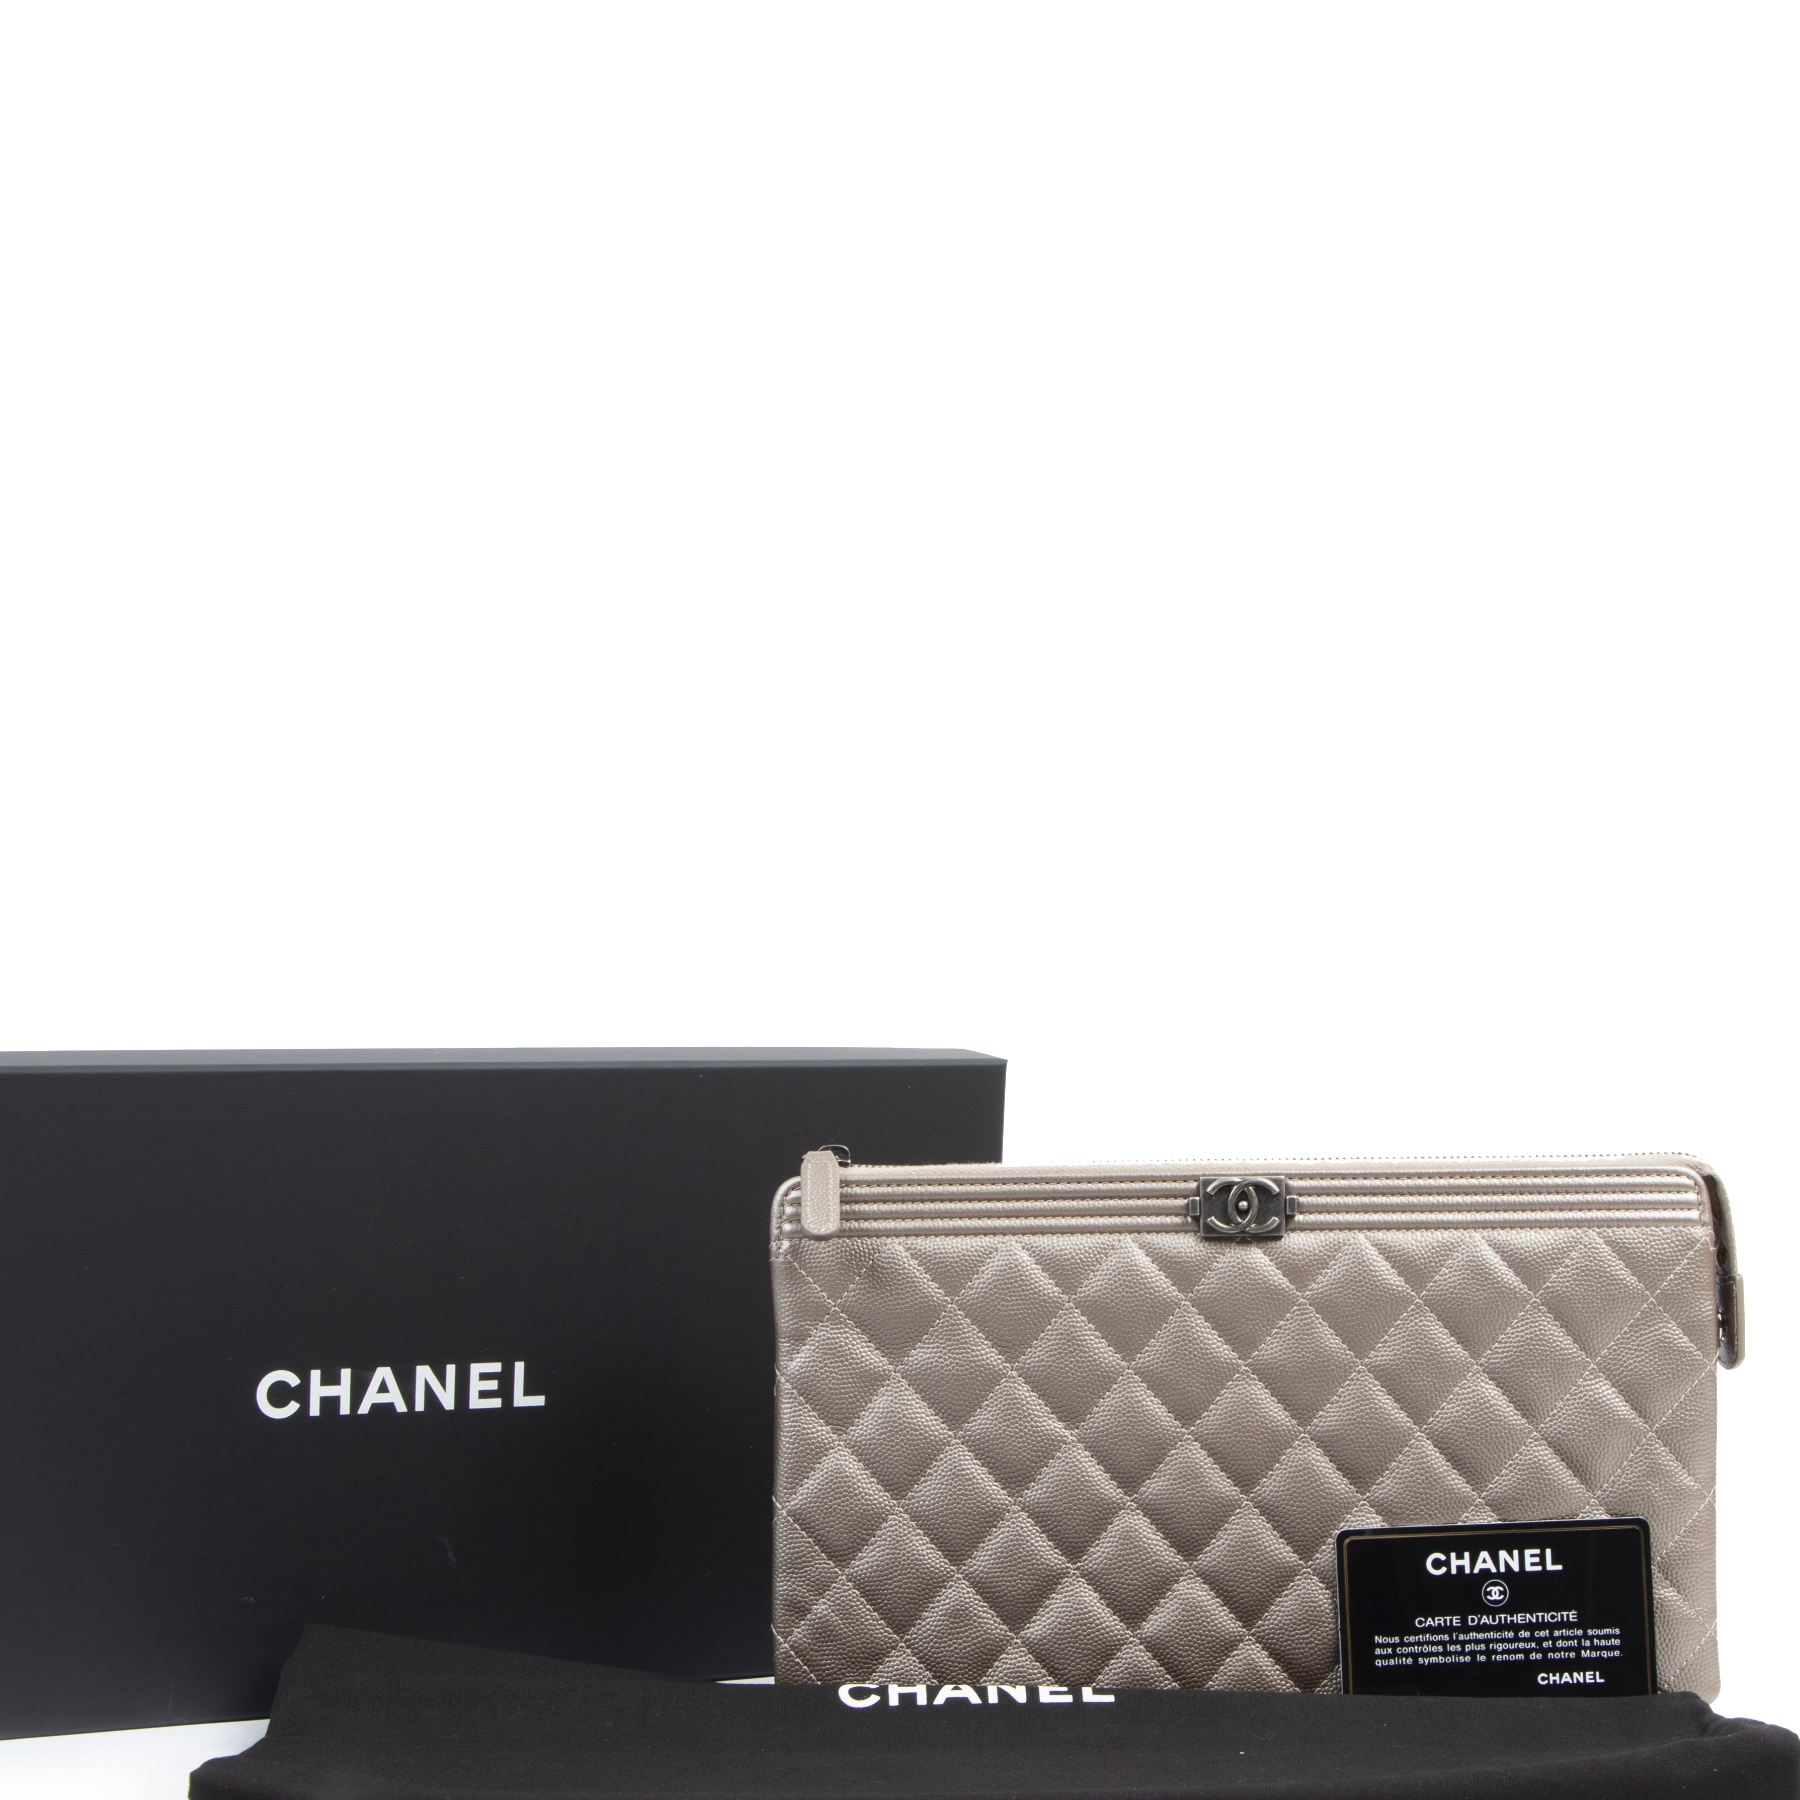 Authentieke tweedehands vintage Chanel Bronze Leather Caviar Boy Clutch koop online webshop LabelLOV